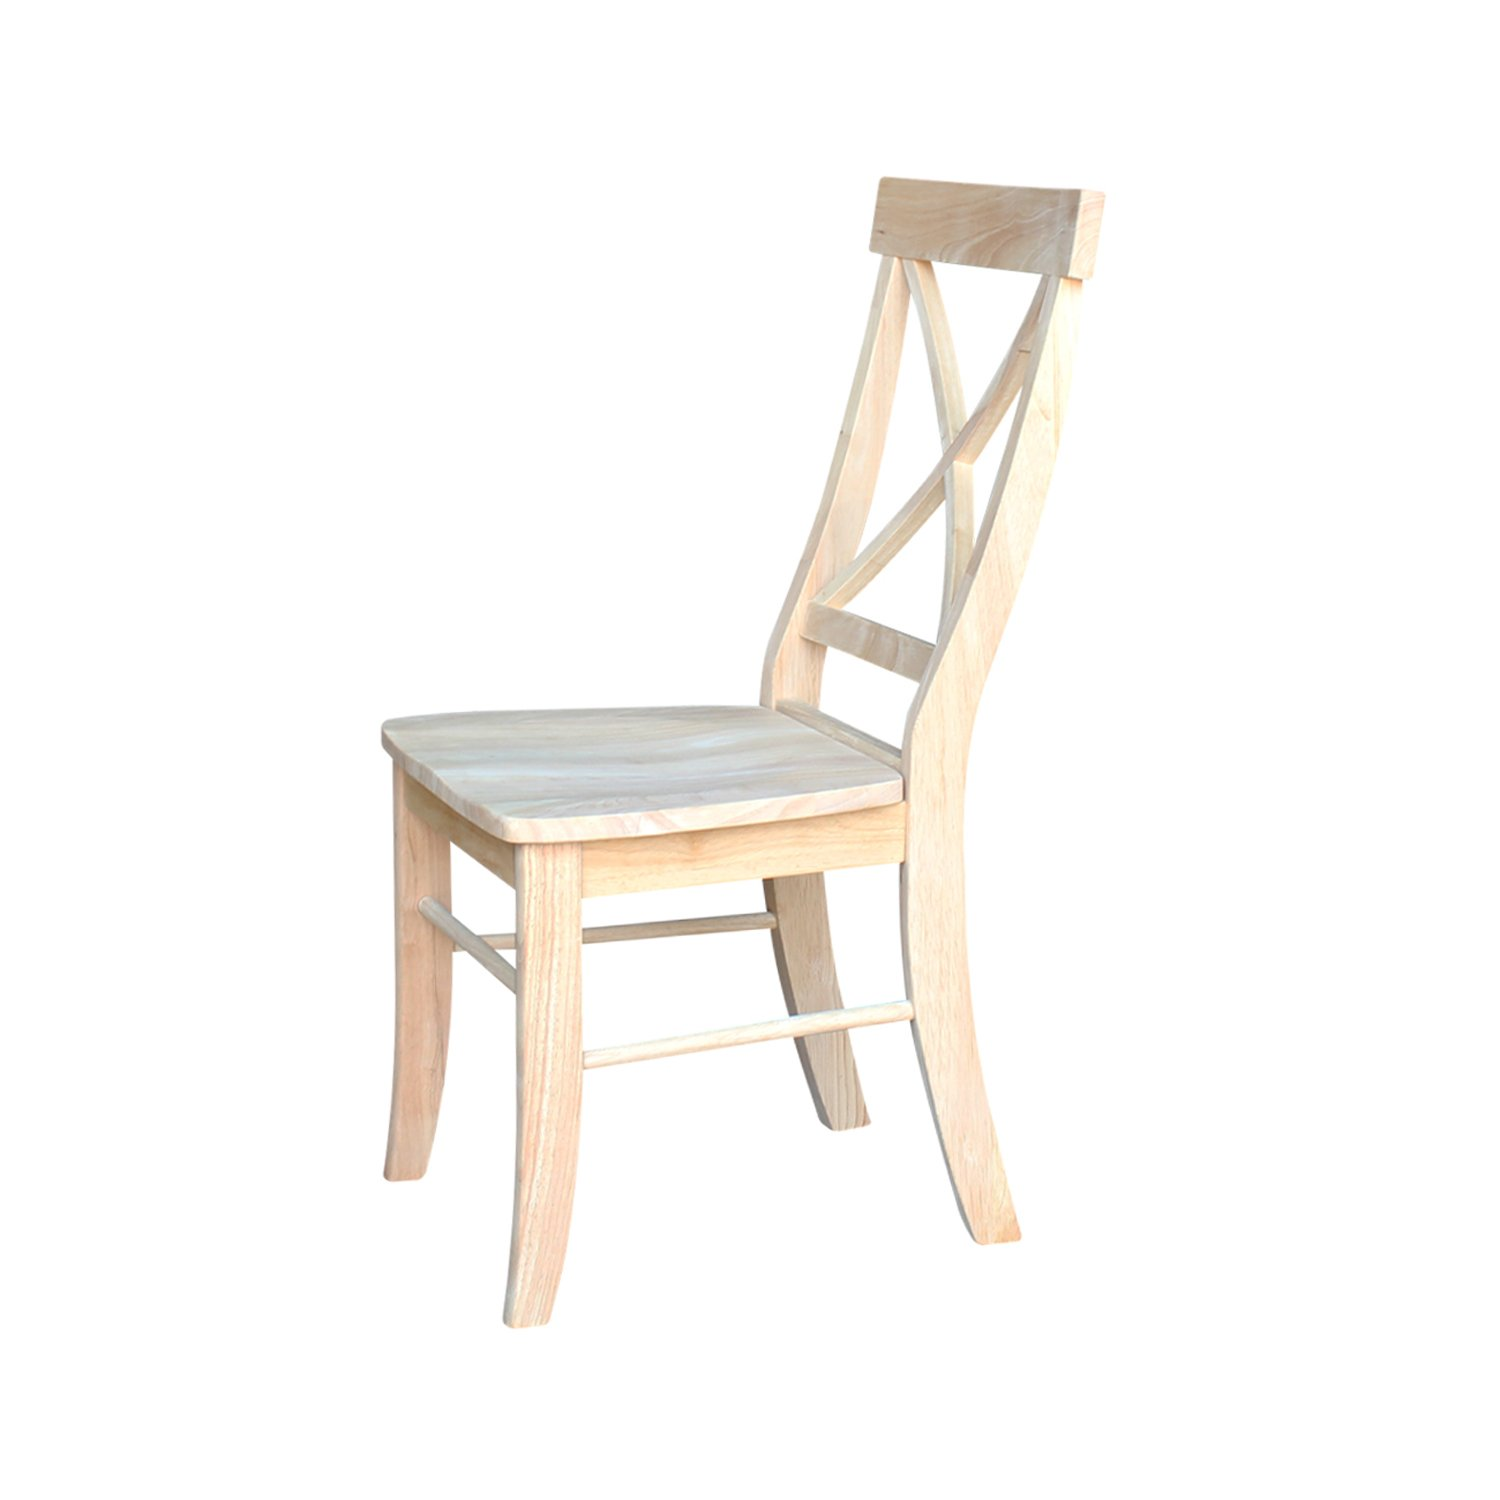 International Concepts C-613P Pair of X-Back Chairs, Unfinished